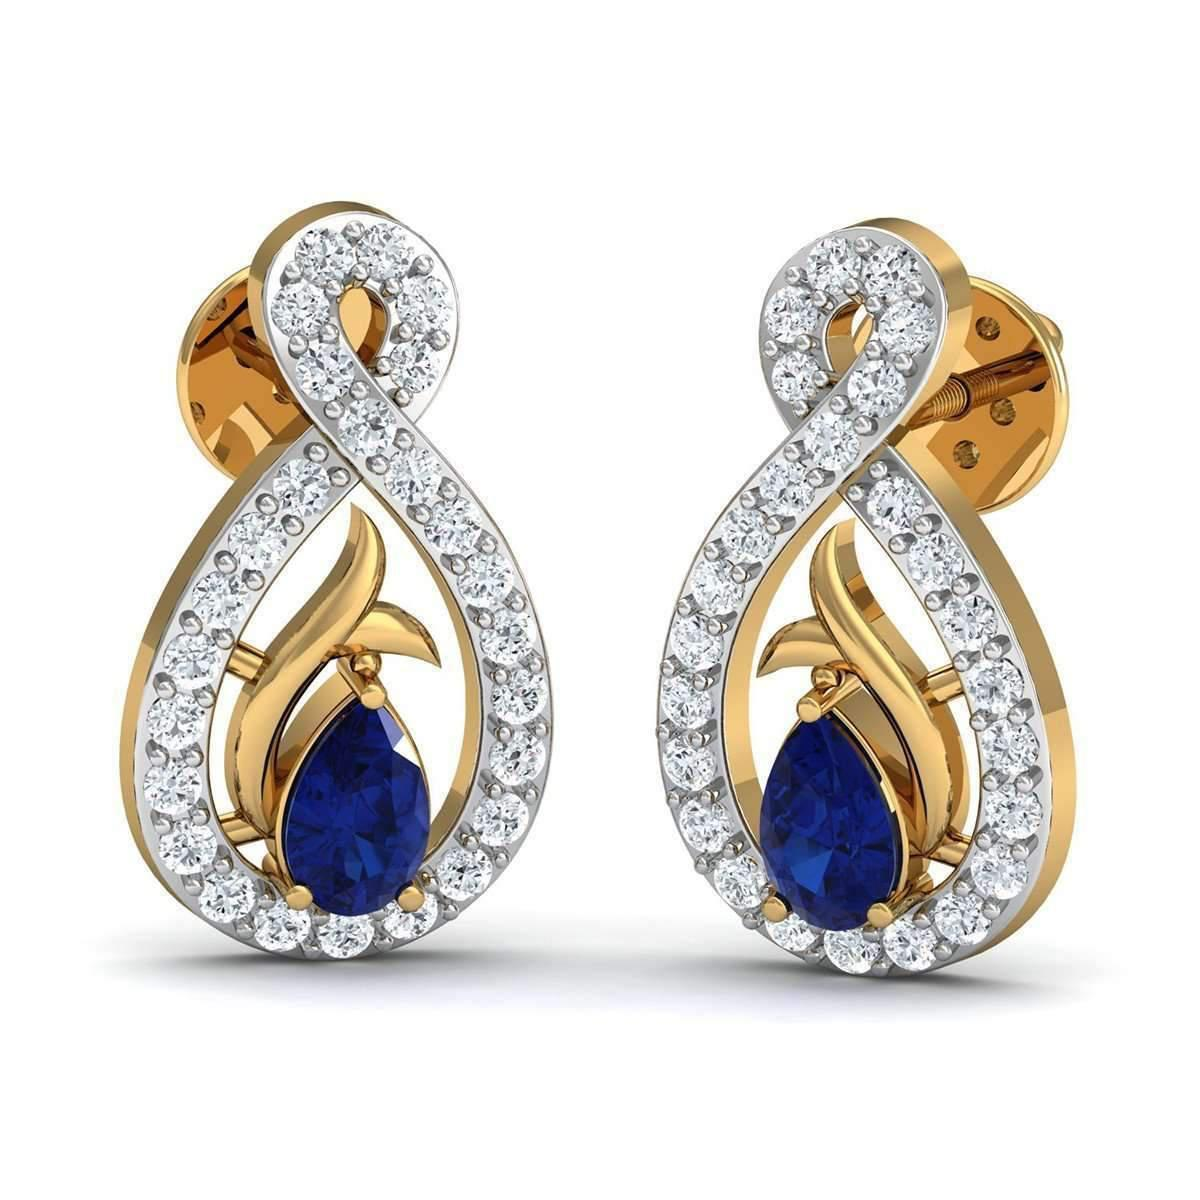 Diamoire Jewels Oval Cut Blue Sapphire and Diamond Earrings in 10kt Yellow Gold JPnd4